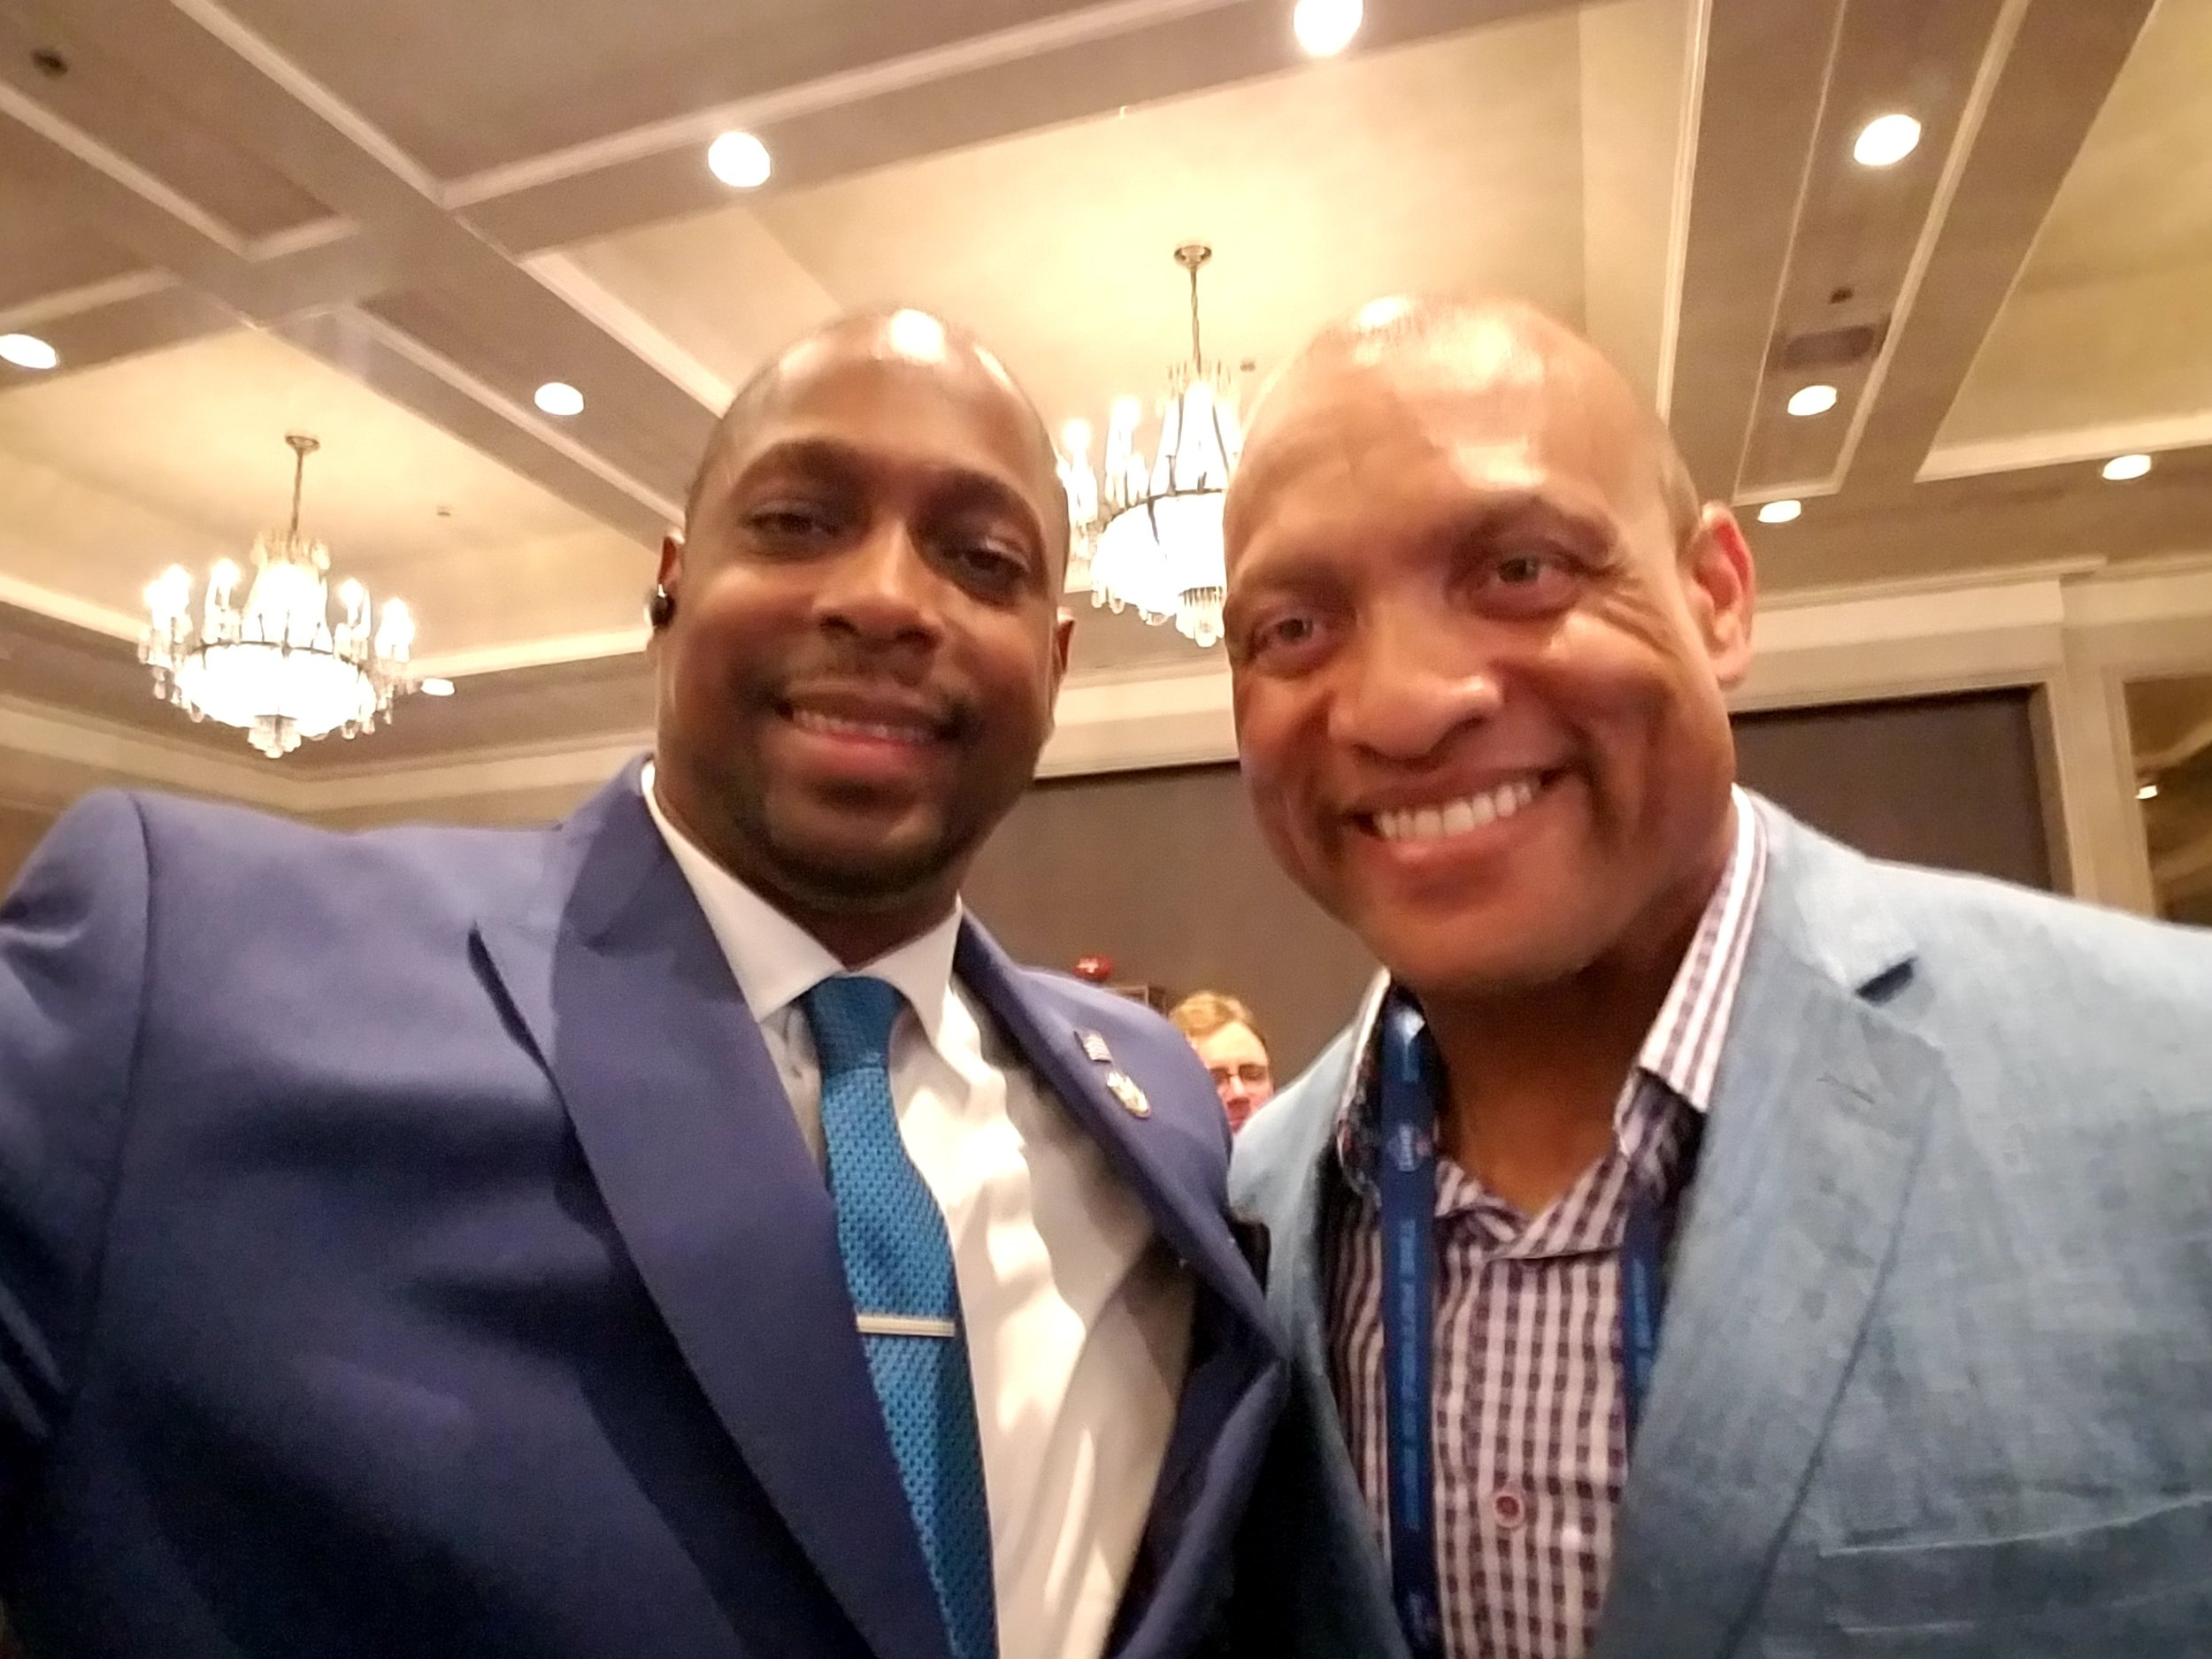 #WEREHERE with Hall of Fame Cornerback, Aeneas Williams of the Arizona Cardinals and St Louis Rams